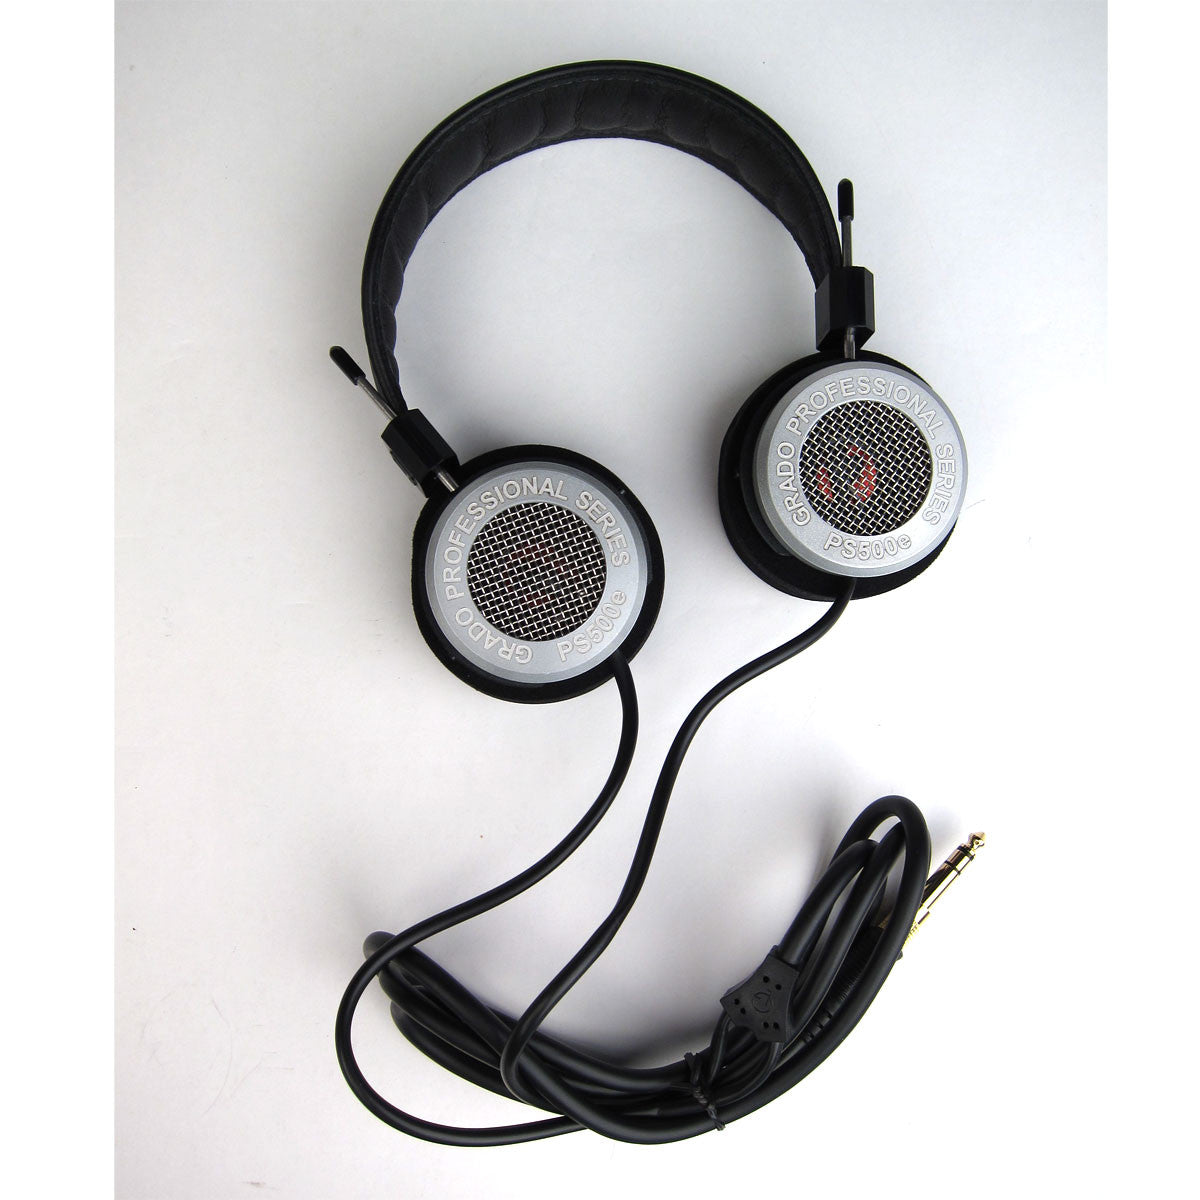 Grado: PS500e Headphones laydown